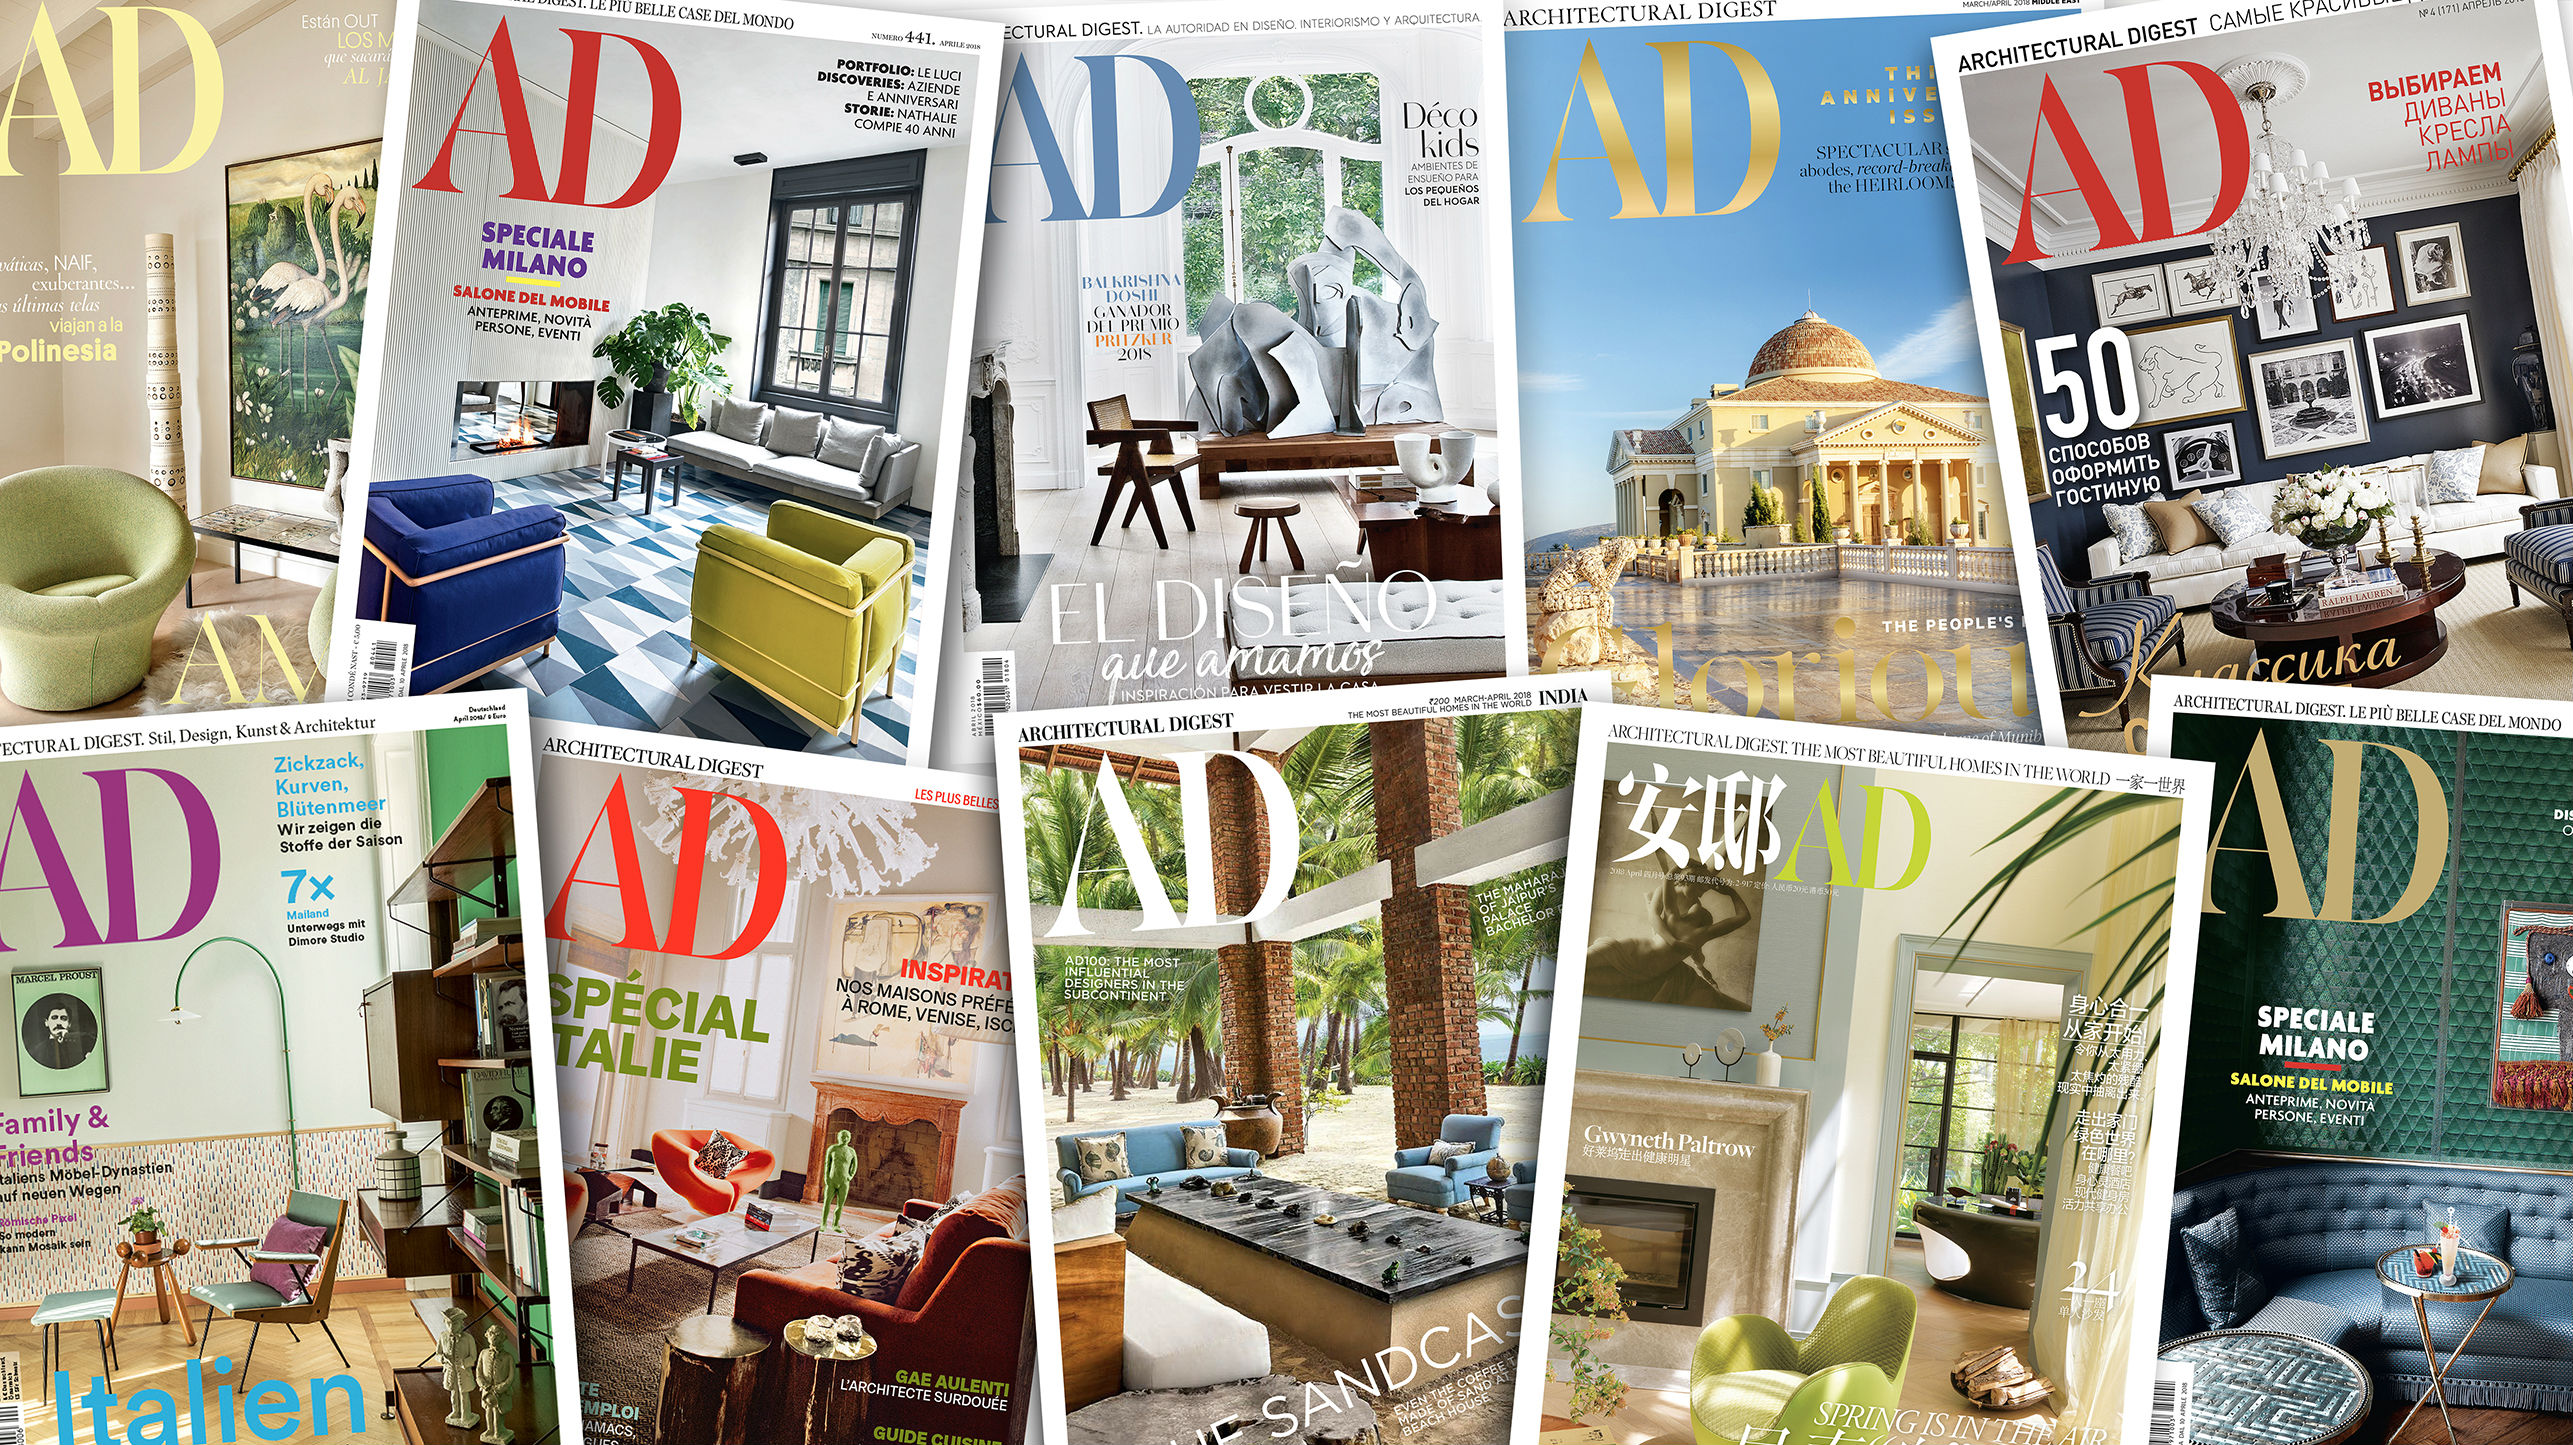 ARCHITECTURAL DIGEST JUNE 2018 /<FREE SHIPPING BRAND NEW/> Current issue